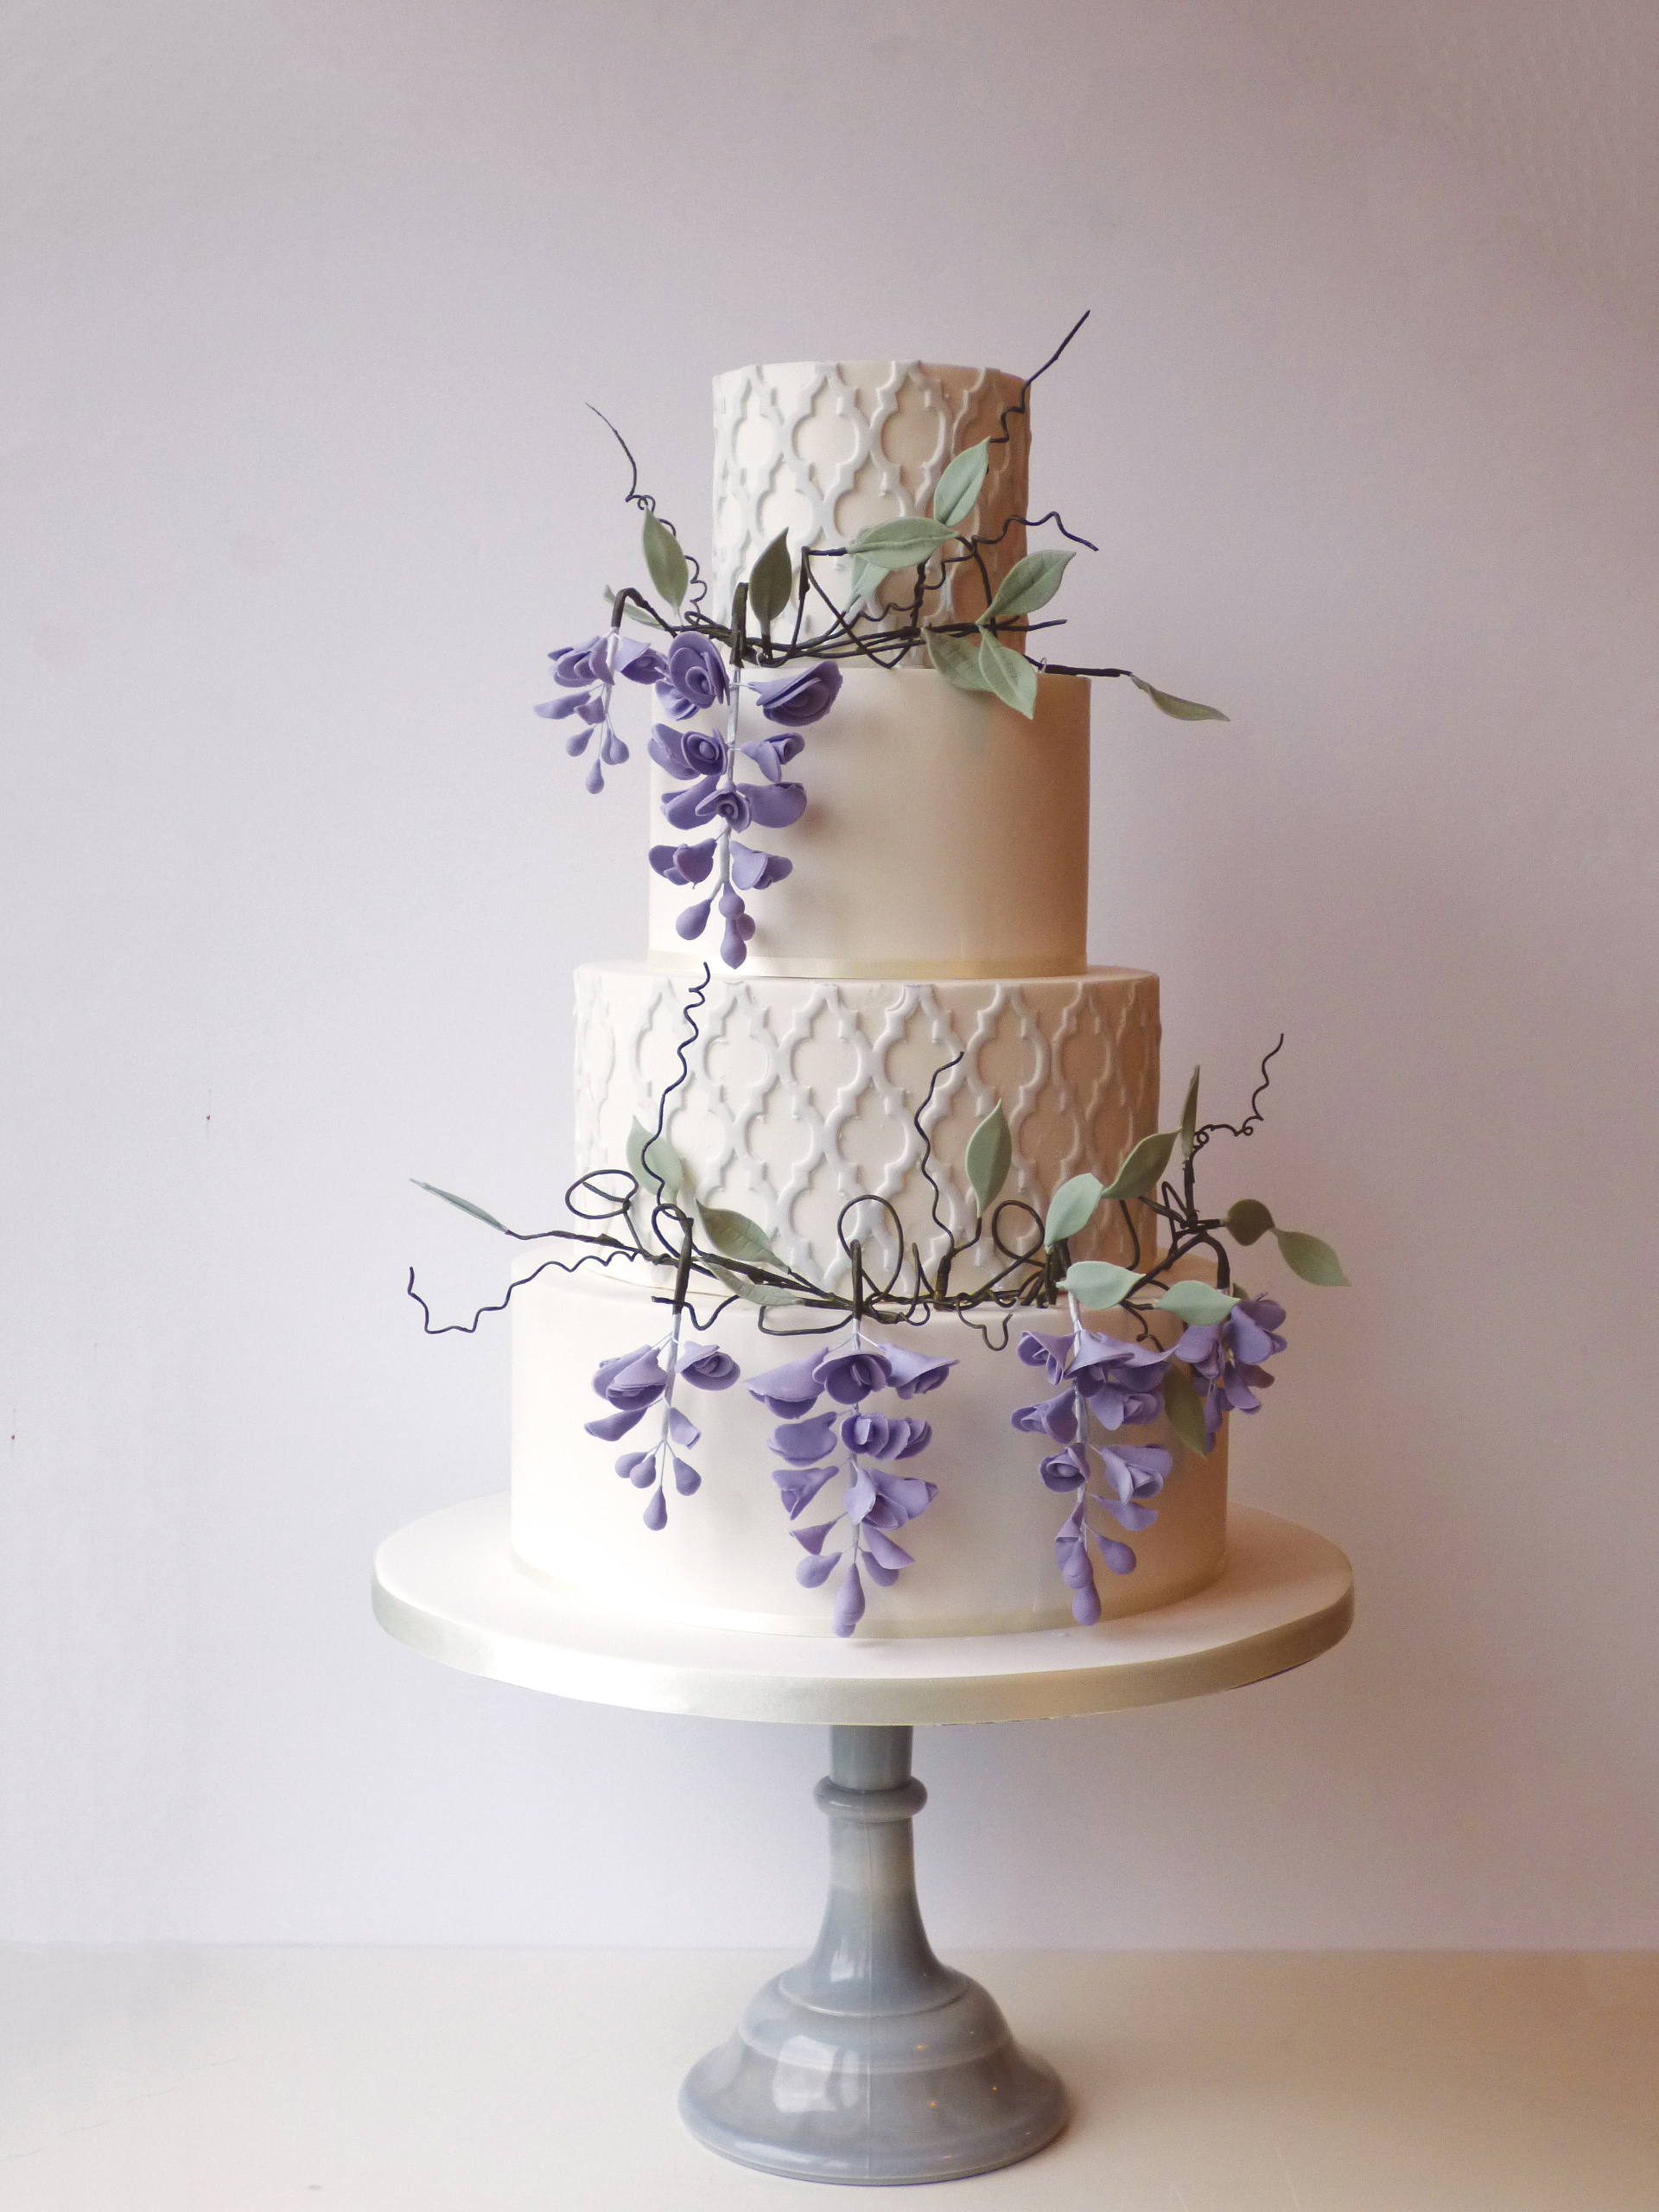 Whimsical Wisteria tumbling down this wedding cake makes it perfect for a venue like Pembroke Lodge, Chiswick House, Kew Gardens or Hampton Court Palace!